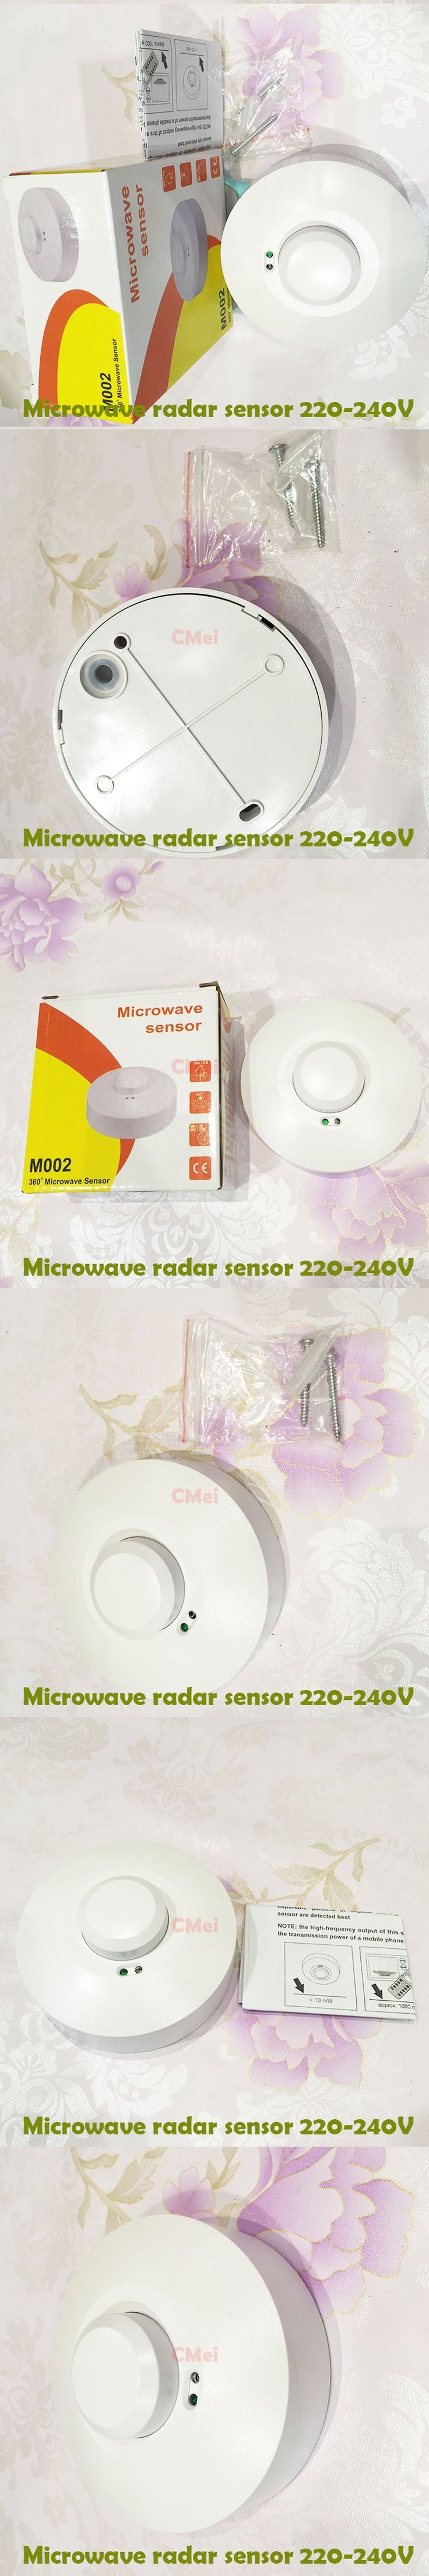 New Electric Unit Automatic Microwave Radar Sensor Light Switch PIR Ceiling Body Motion Detector 220V 1200W  Free shipping 1YY